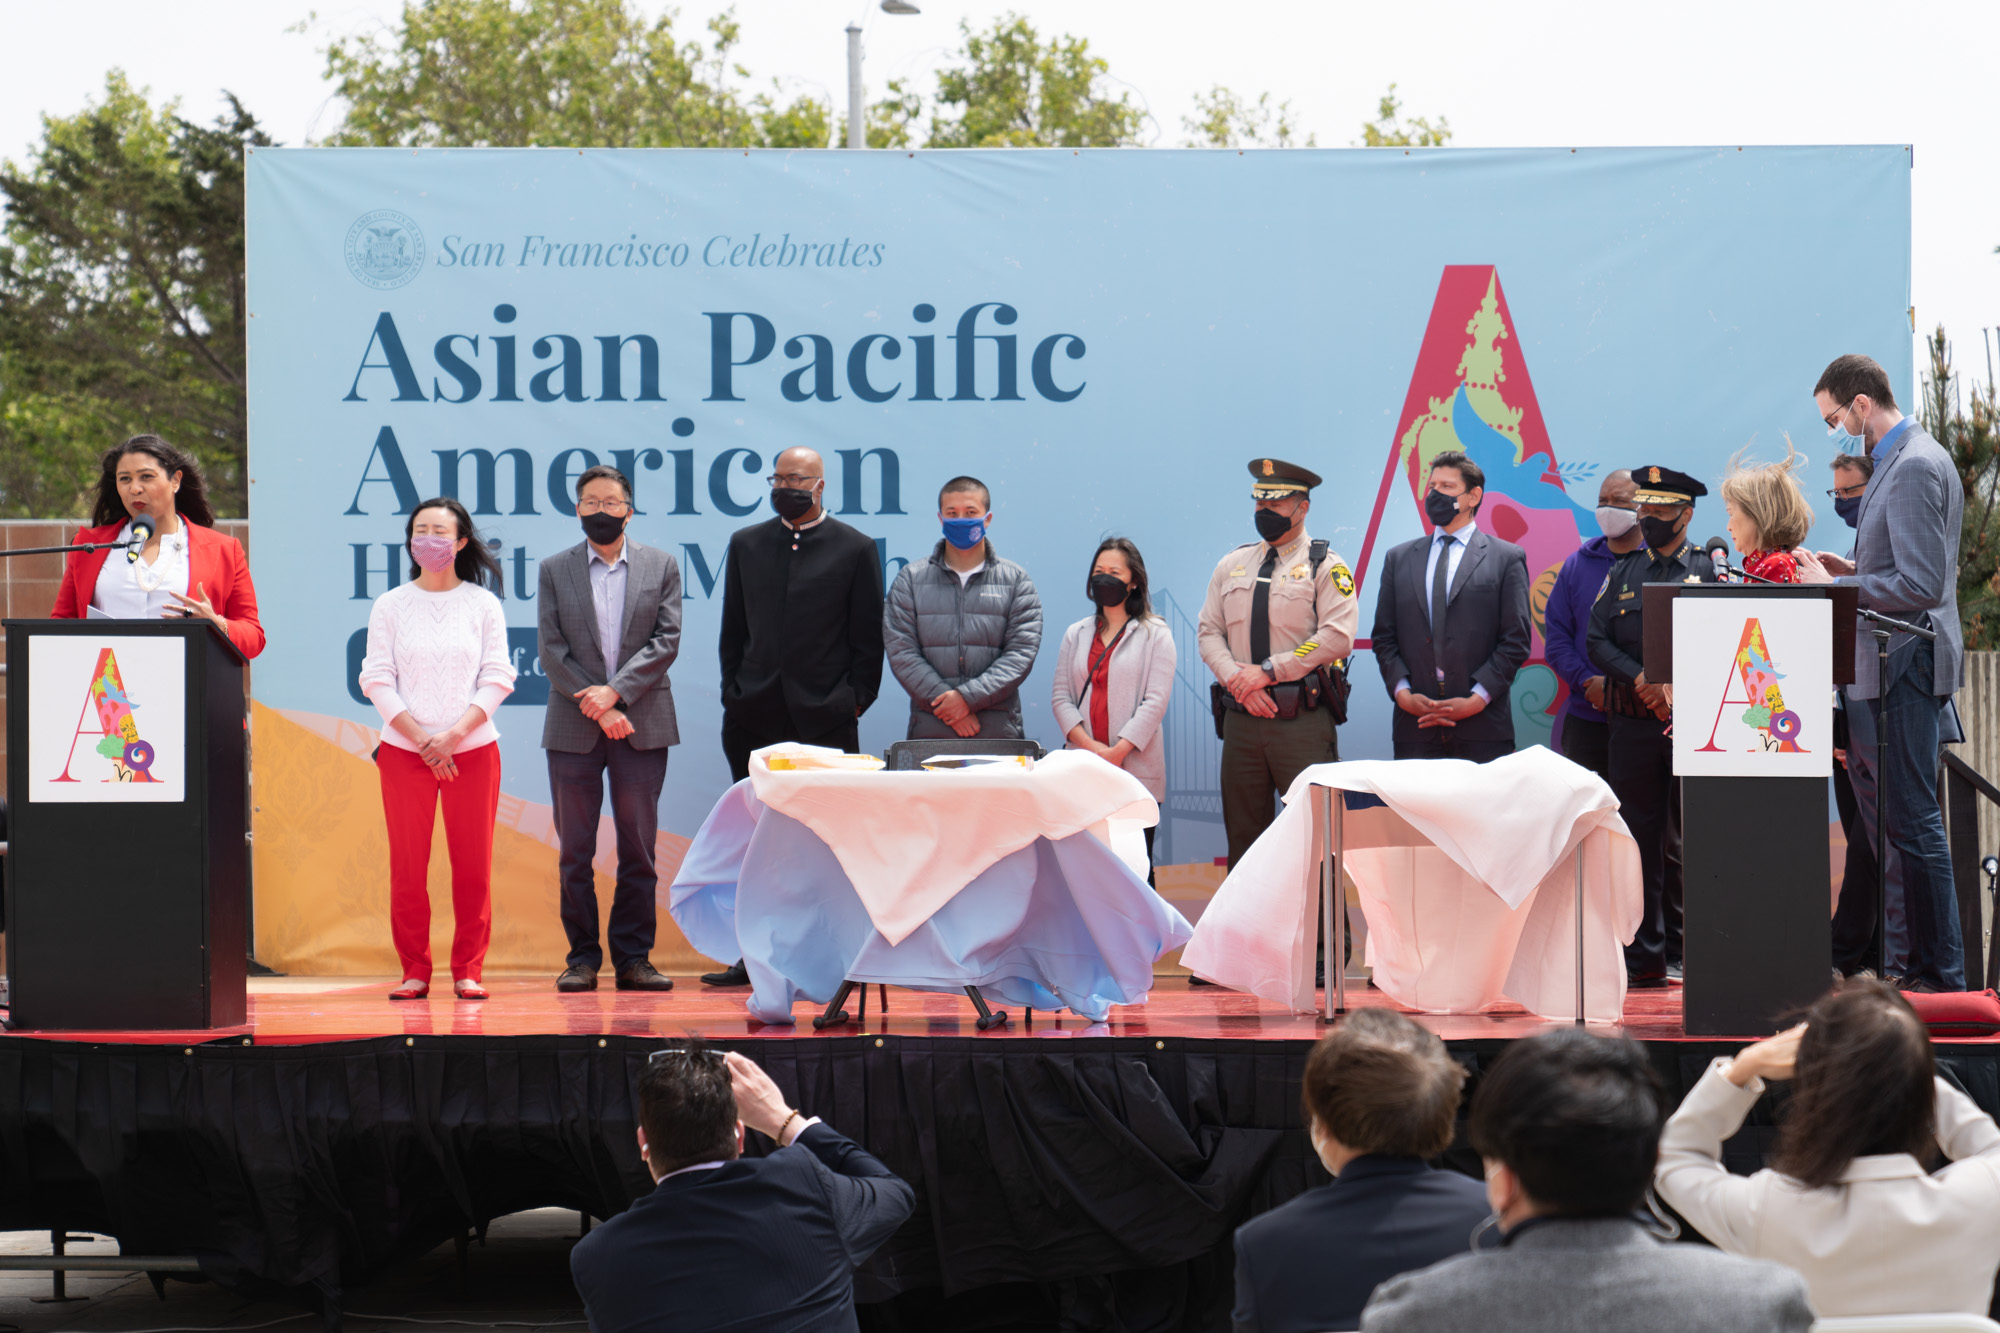 May: SF Celebrates Asian Pacific American Heritage Month